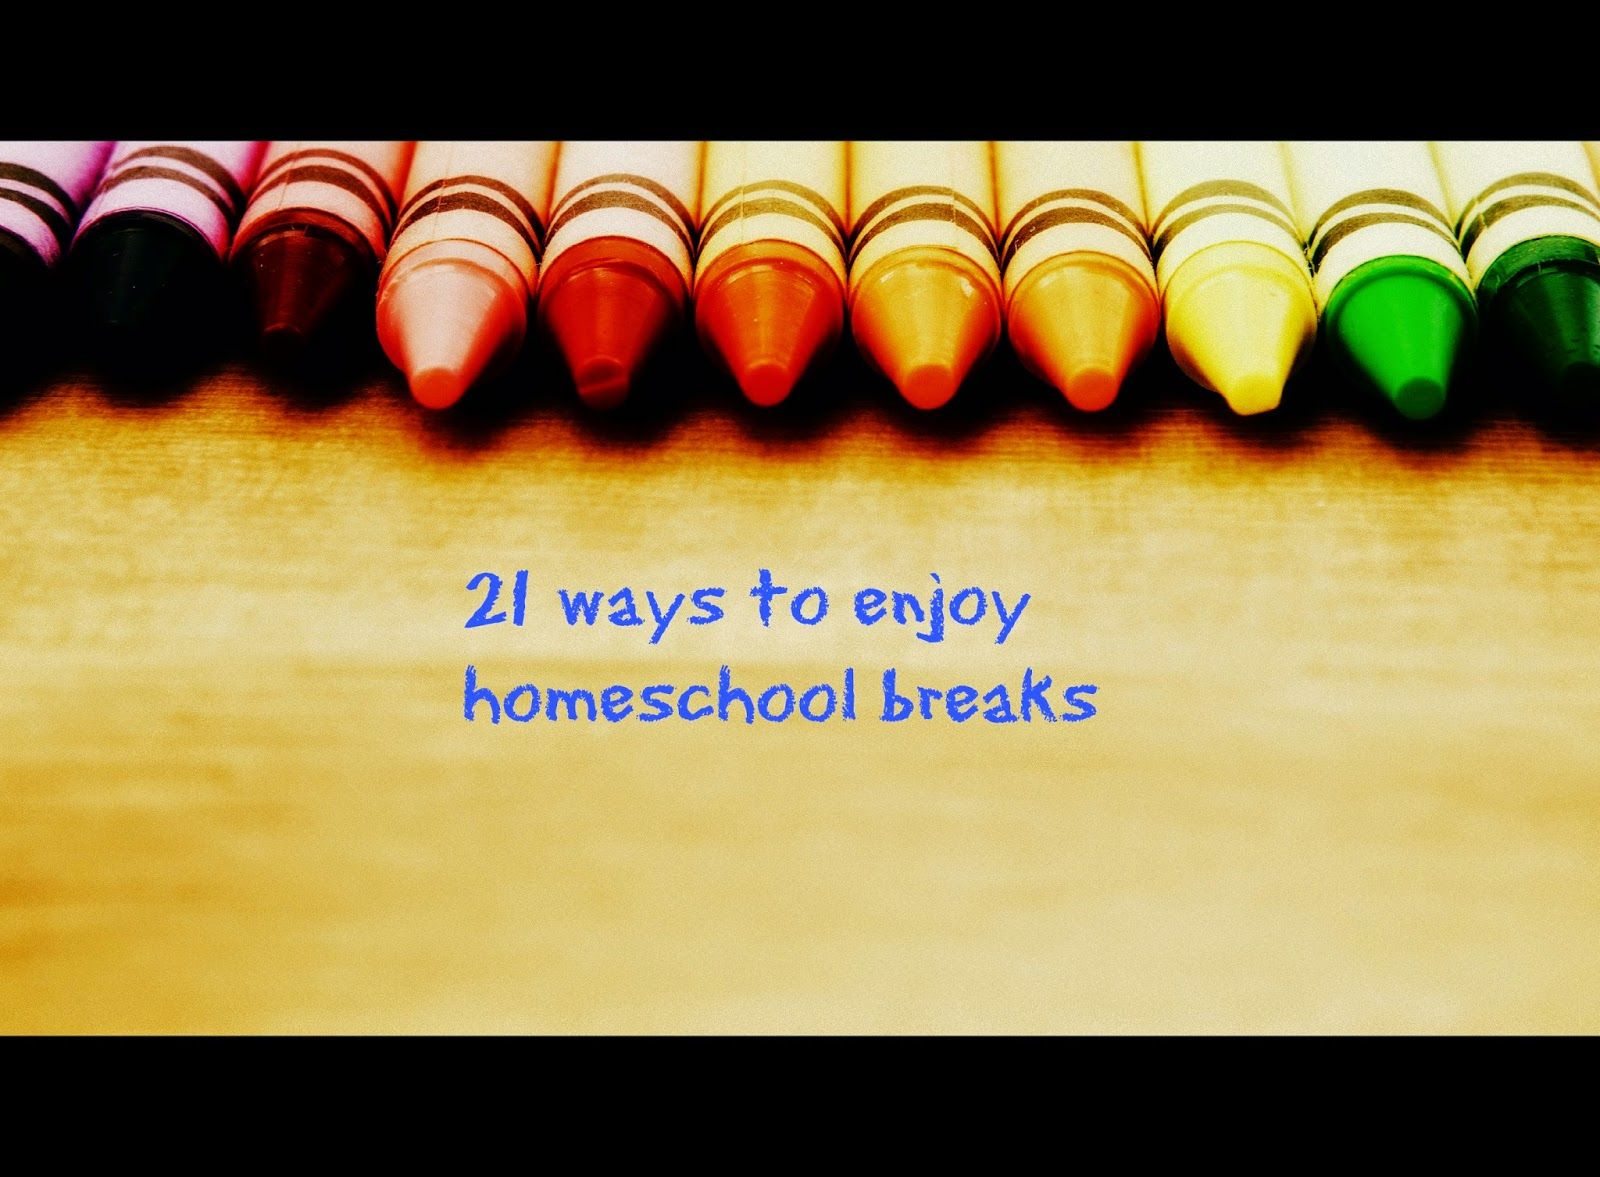 21 ways to enjoy #homeschool breaks